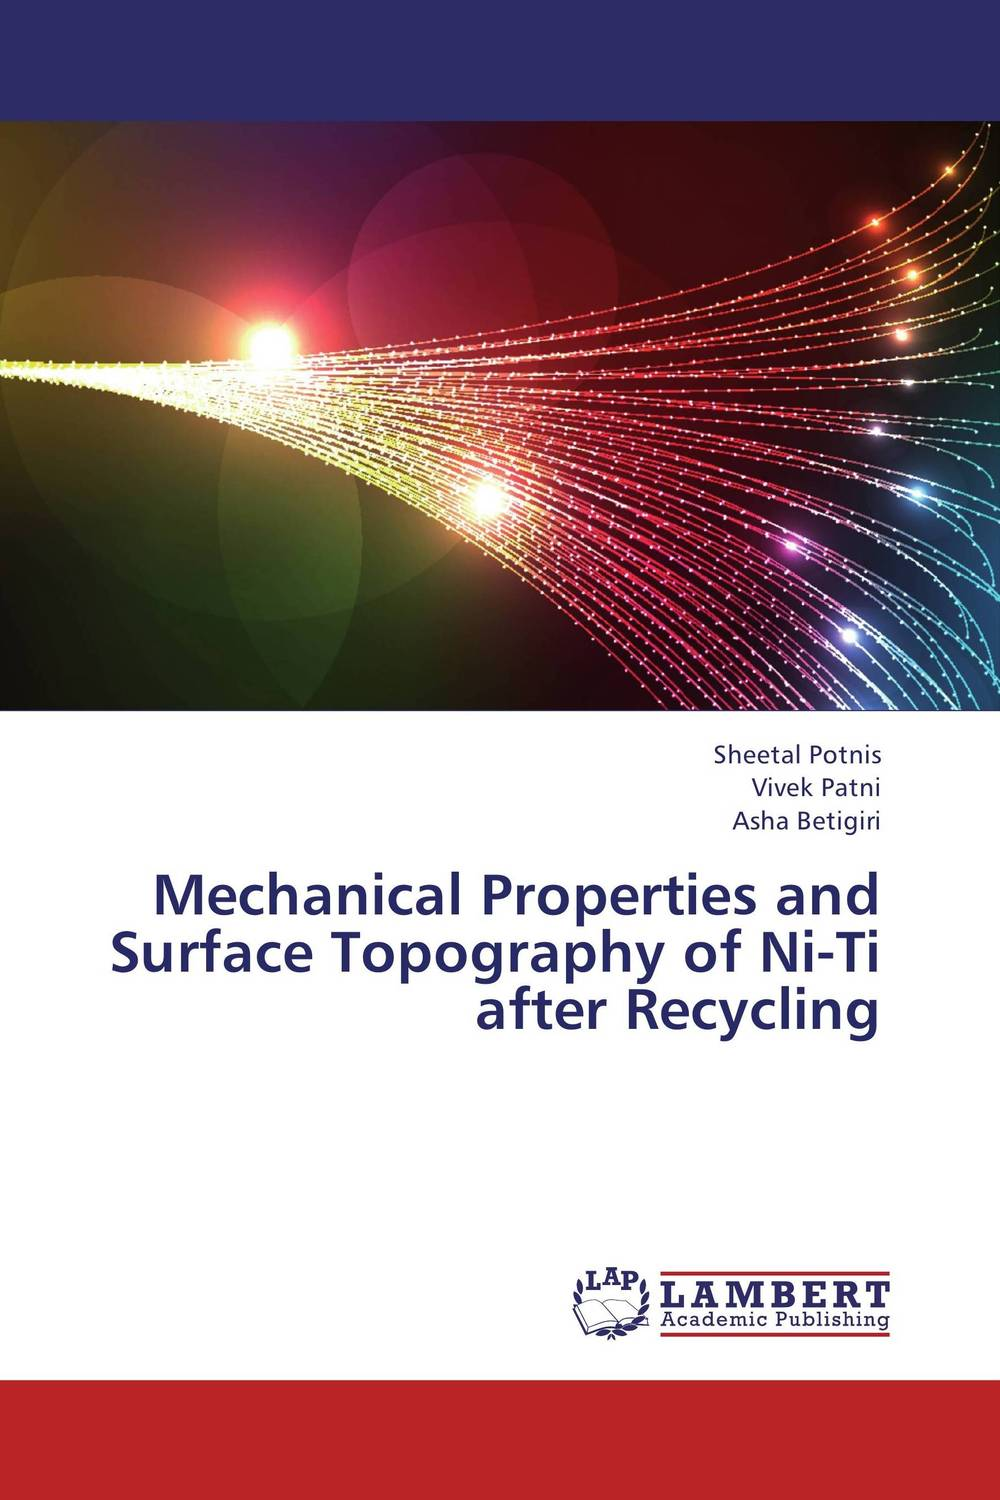 Mechanical Properties and Surface Topography of Ni-Ti after Recycling simranjeet kaur amaninder singh and pranav gupta surface properties of dental materials under simulated tooth wear